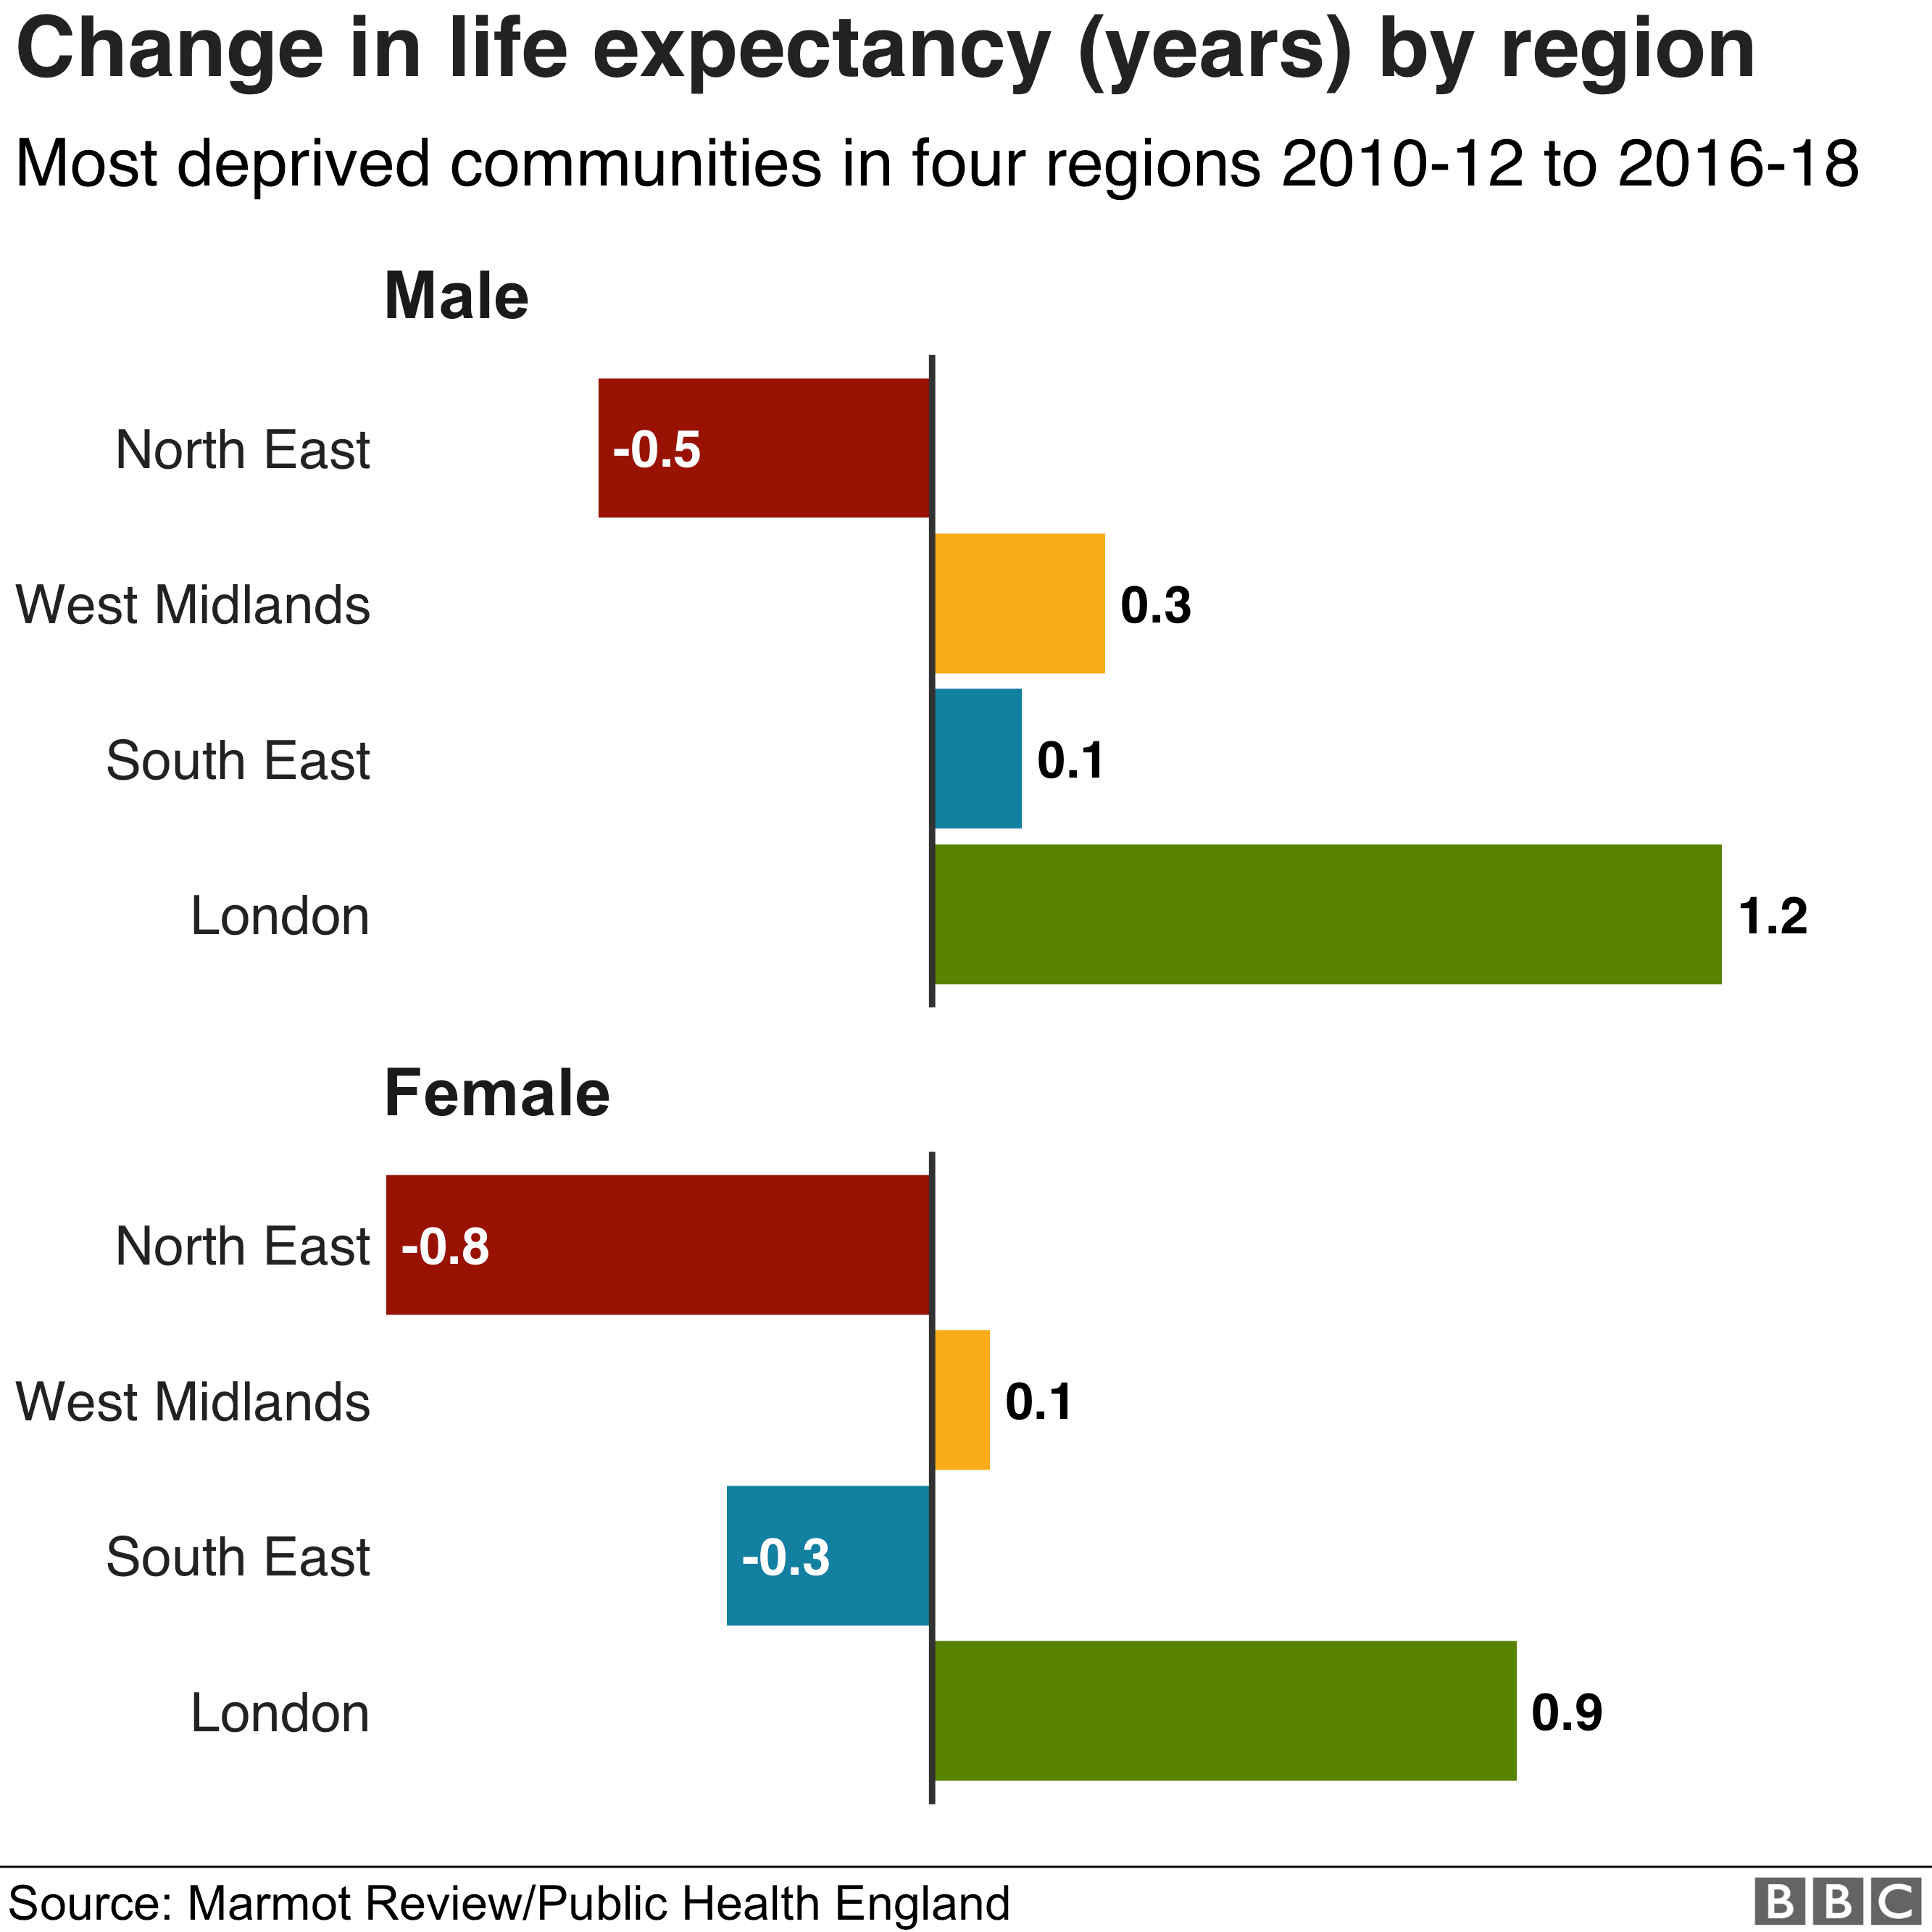 Change in life expectancy by region (in years)